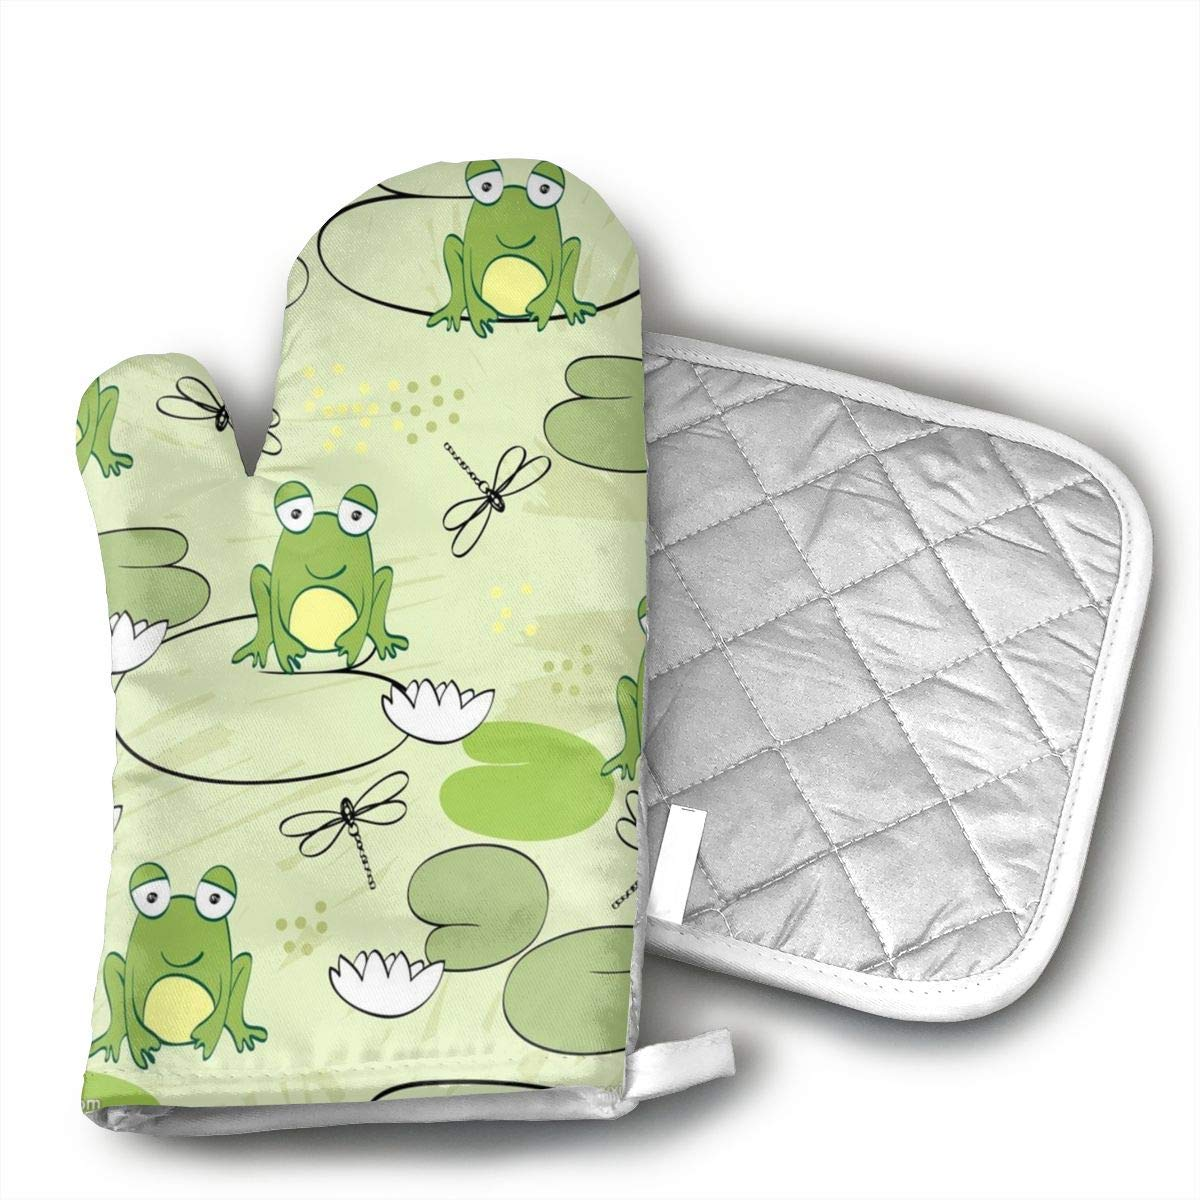 Wiqo9 Cartoon Green Frog Oven Mitts and Pot Holders Kitchen Mitten Cooking Gloves,Cooking, Baking, BBQ.